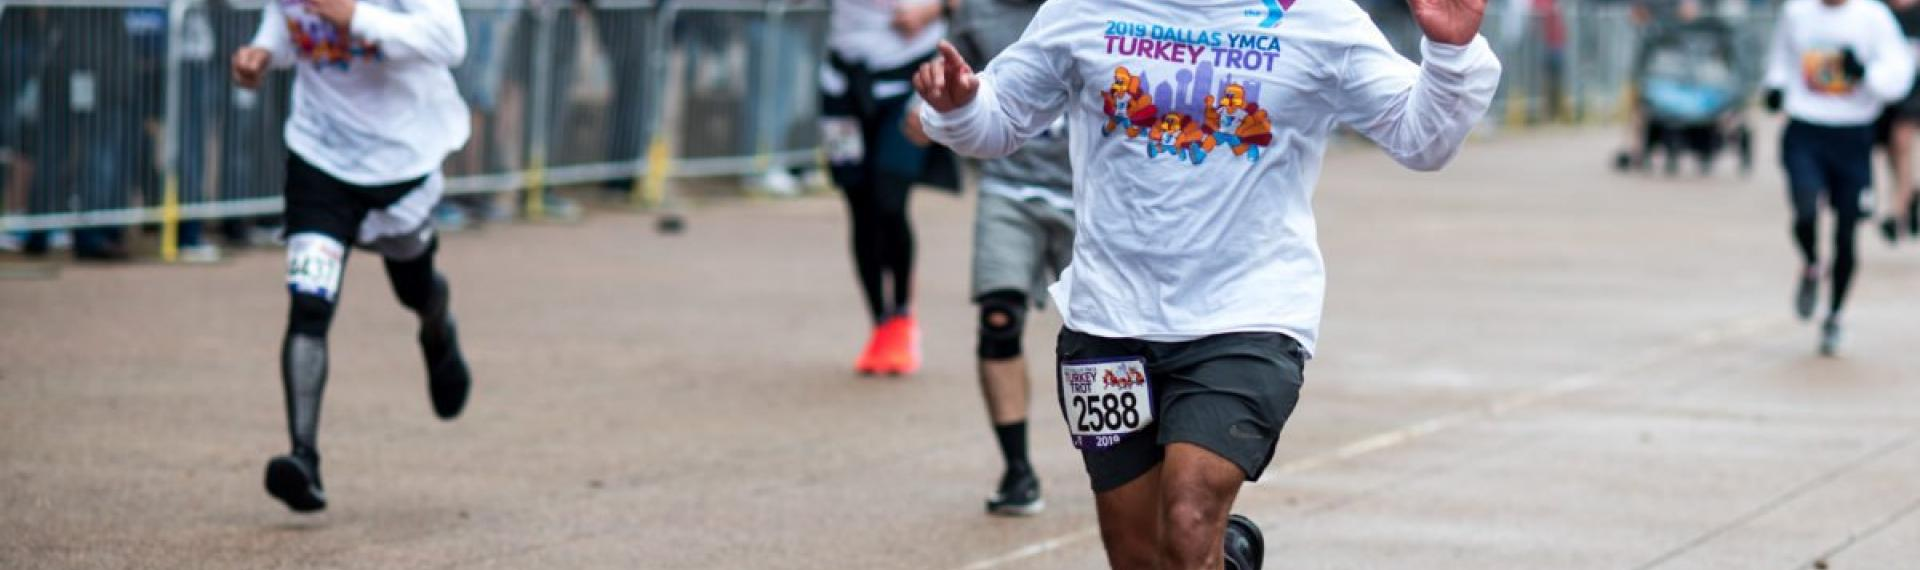 runners at 2019 Turkey Trot